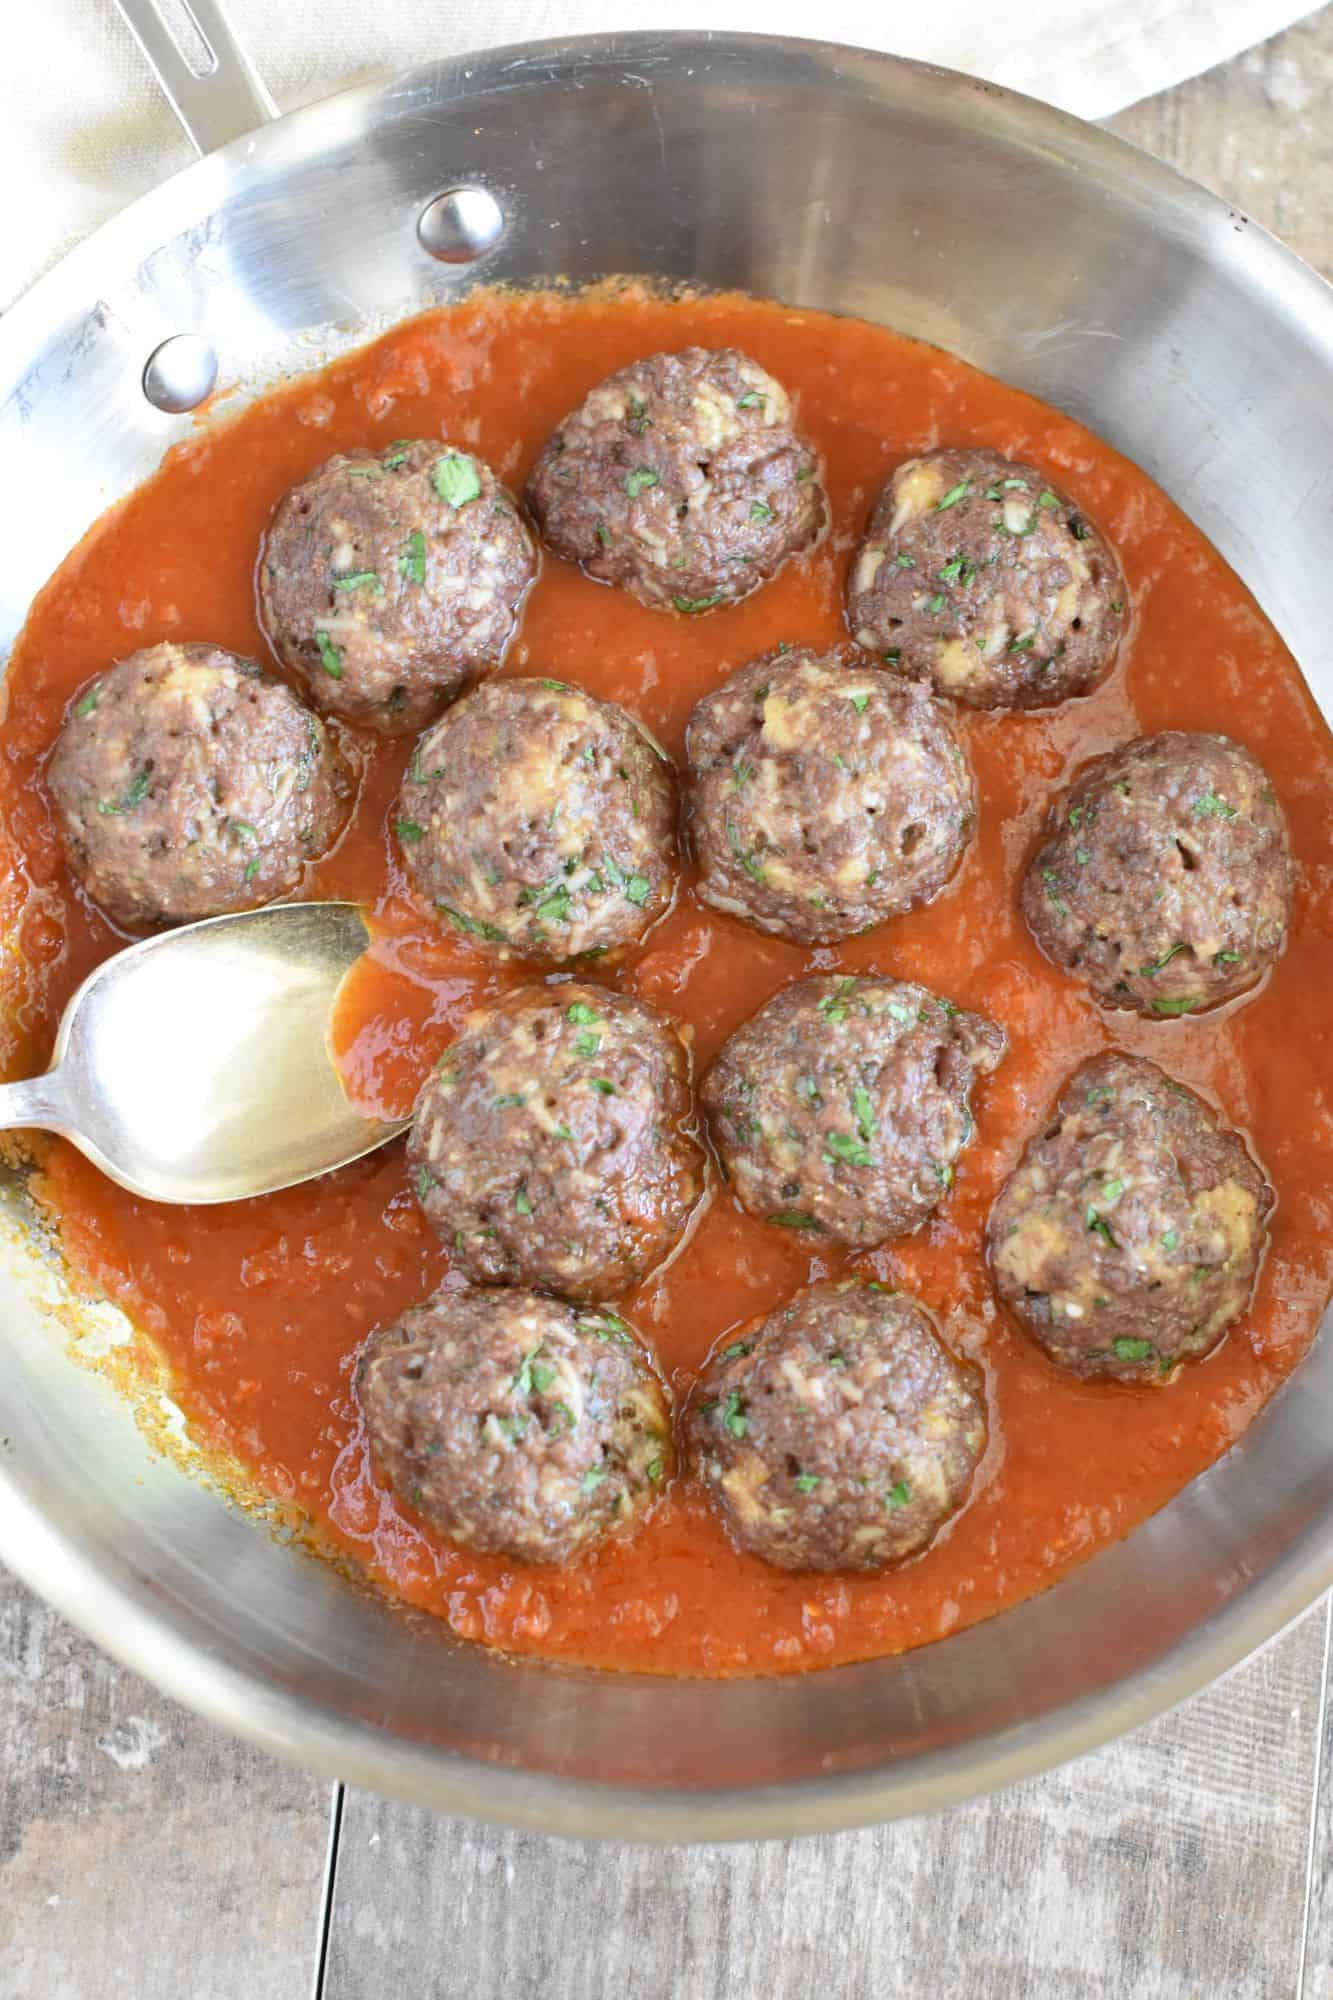 meatballs in skillet in sauce with spoon getting some sauce